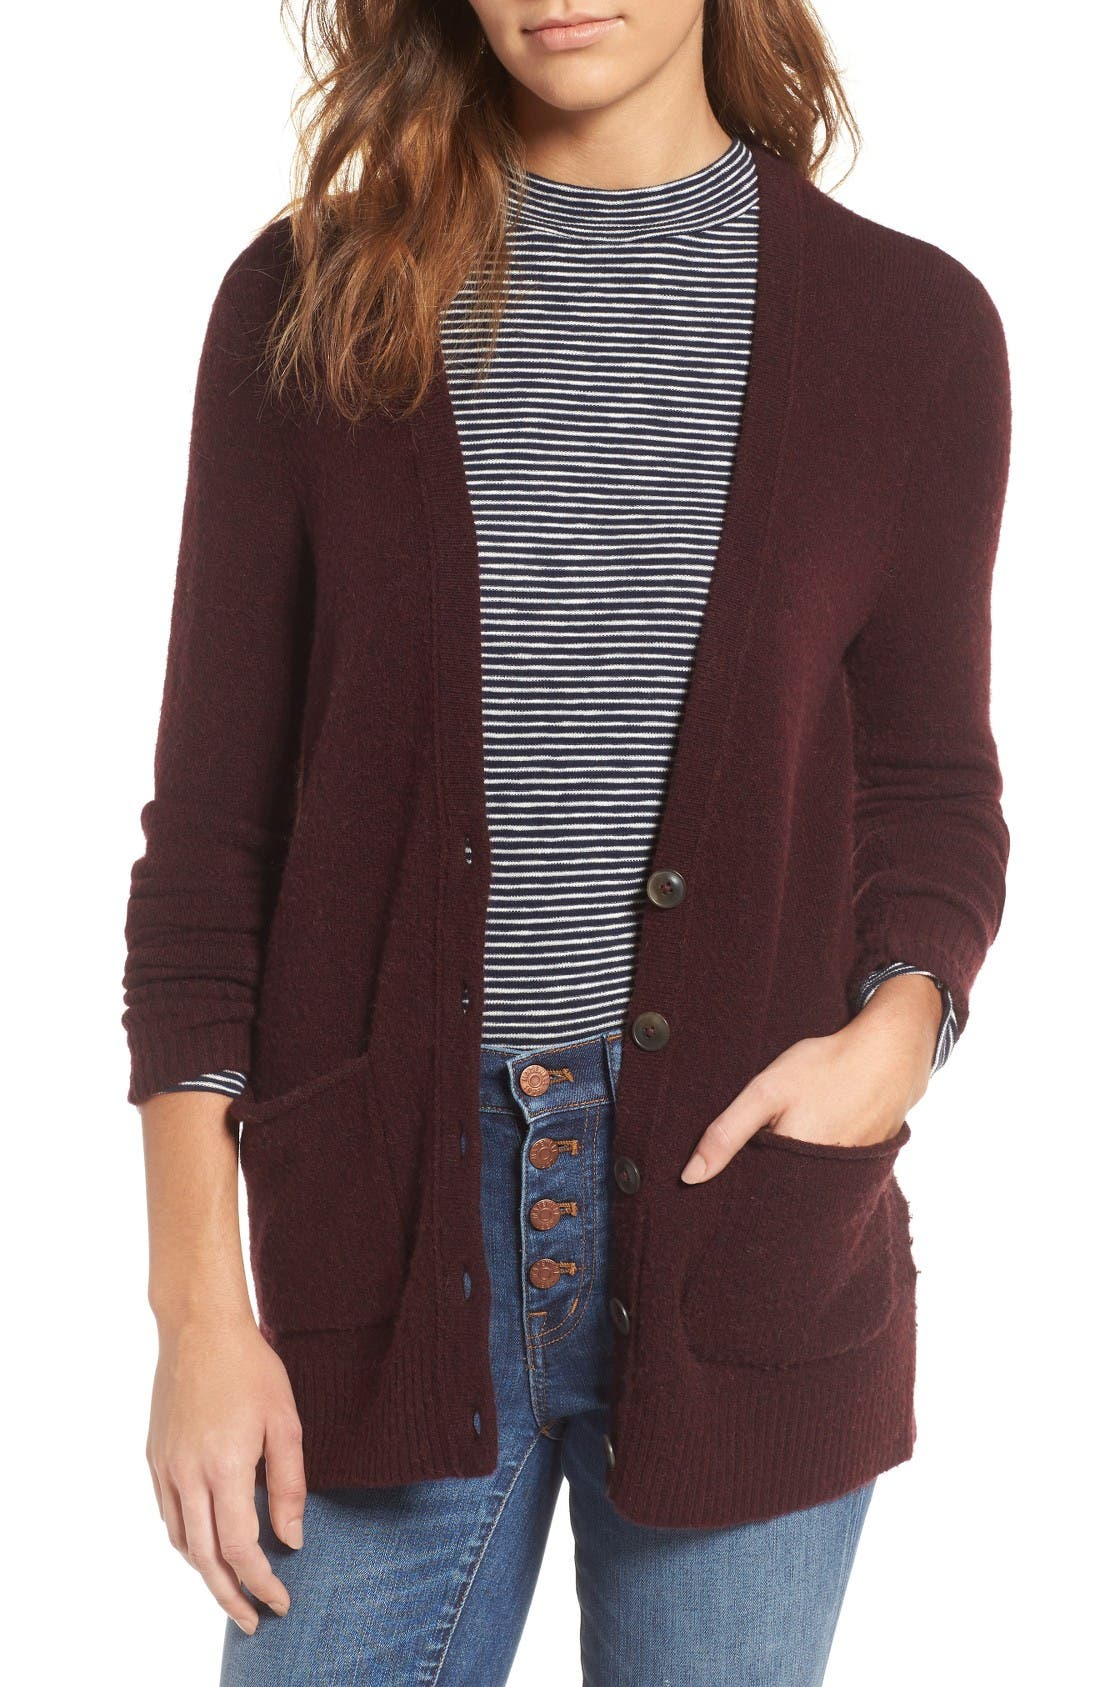 Alternate Image 1 Selected - Madewell Cozy Boyfriend Cardigan